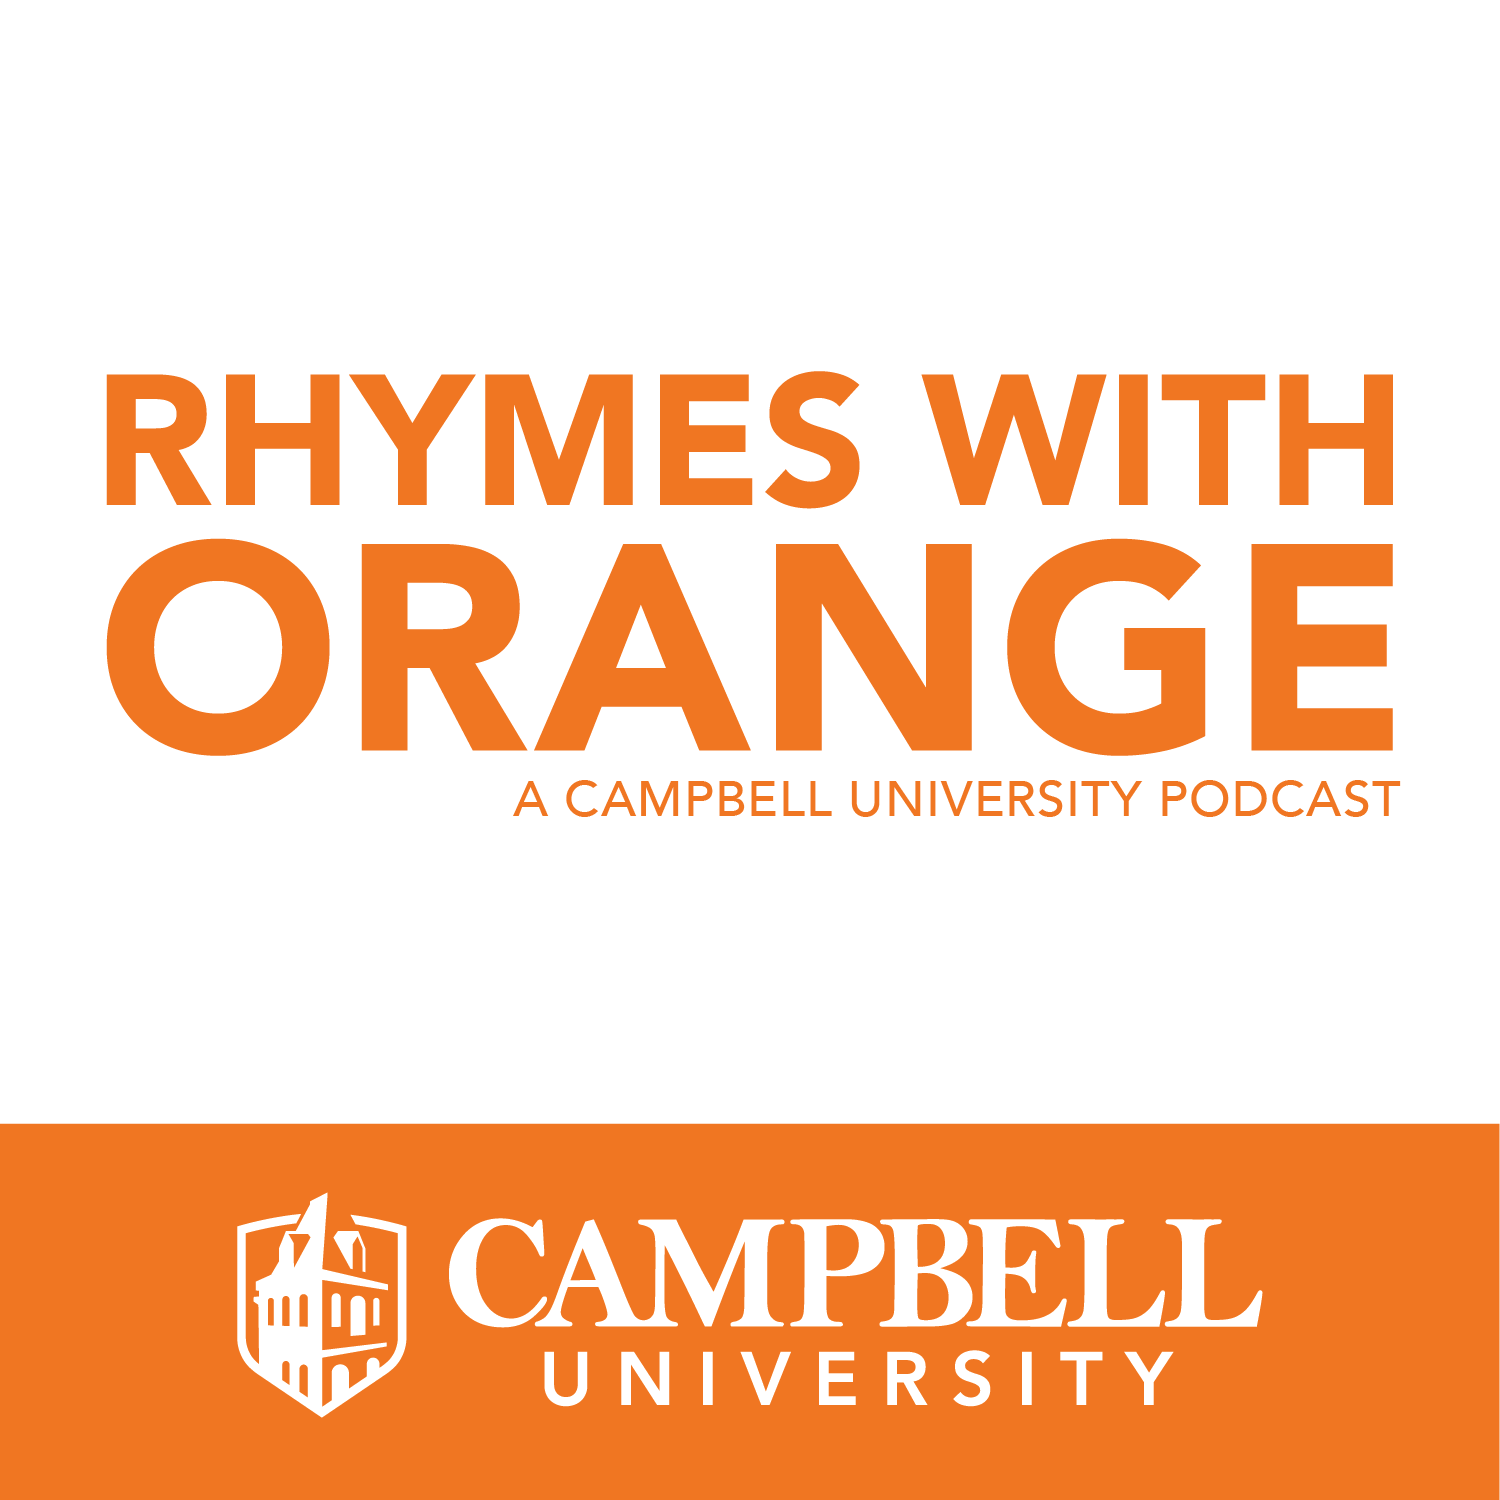 Rhymes With Orange